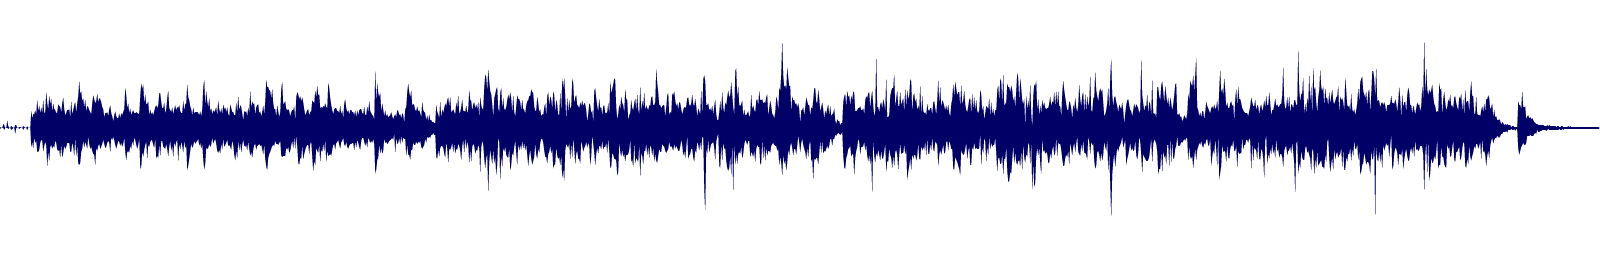 waveform of track #146004